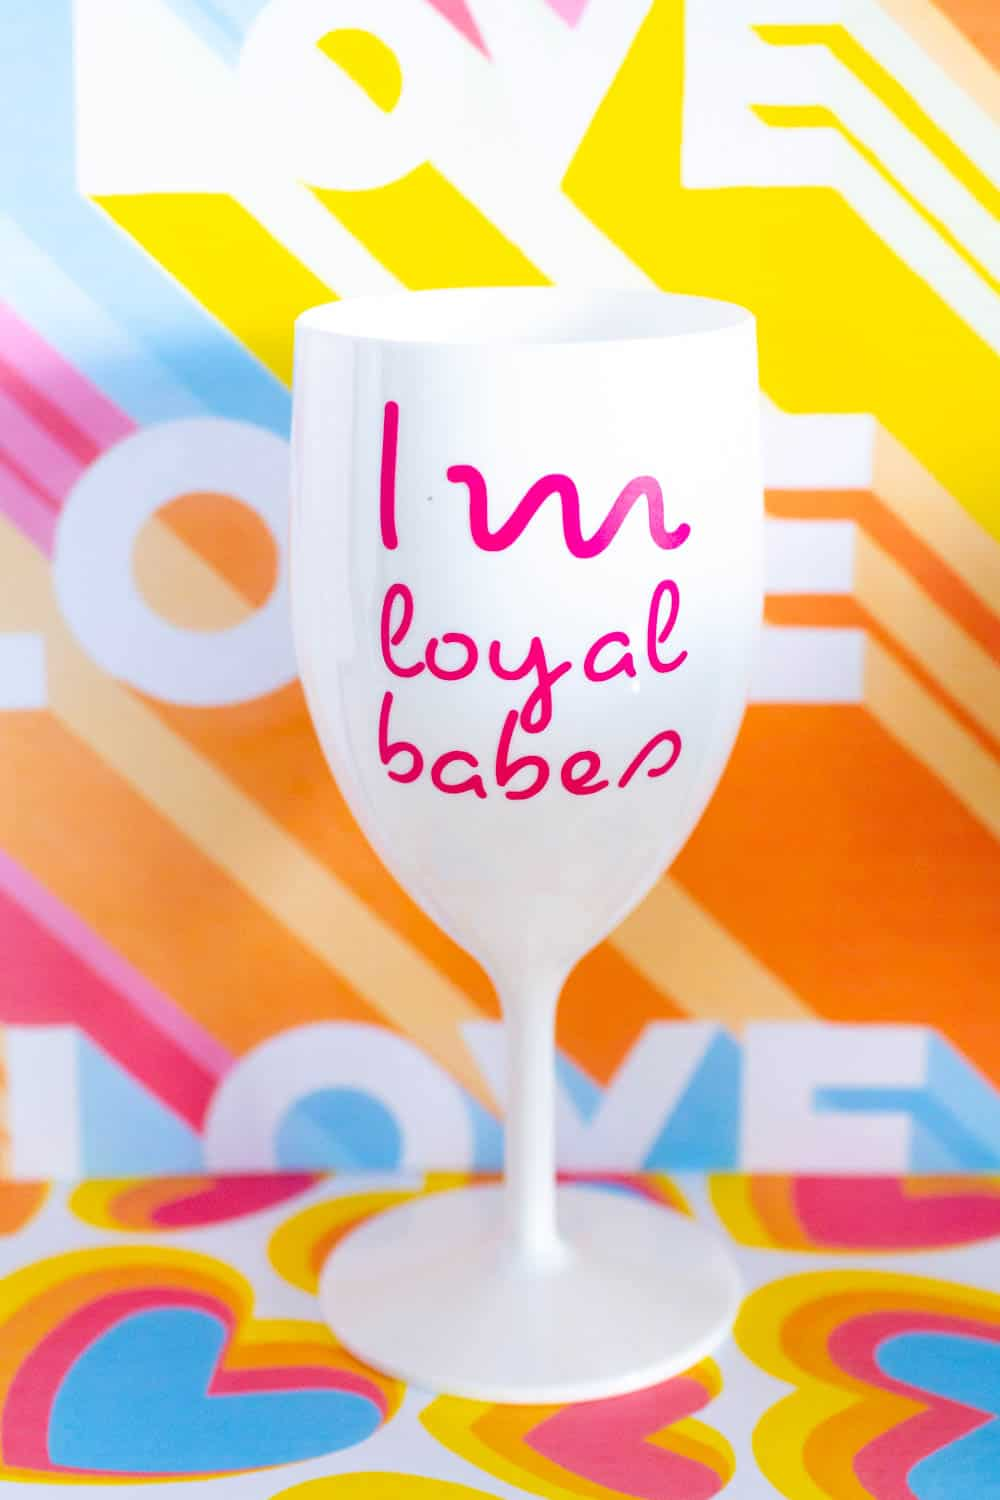 LOVE ISLAND STYLE NAME VINYL DECALS STICKER BOTTLE NOT INCLUDED